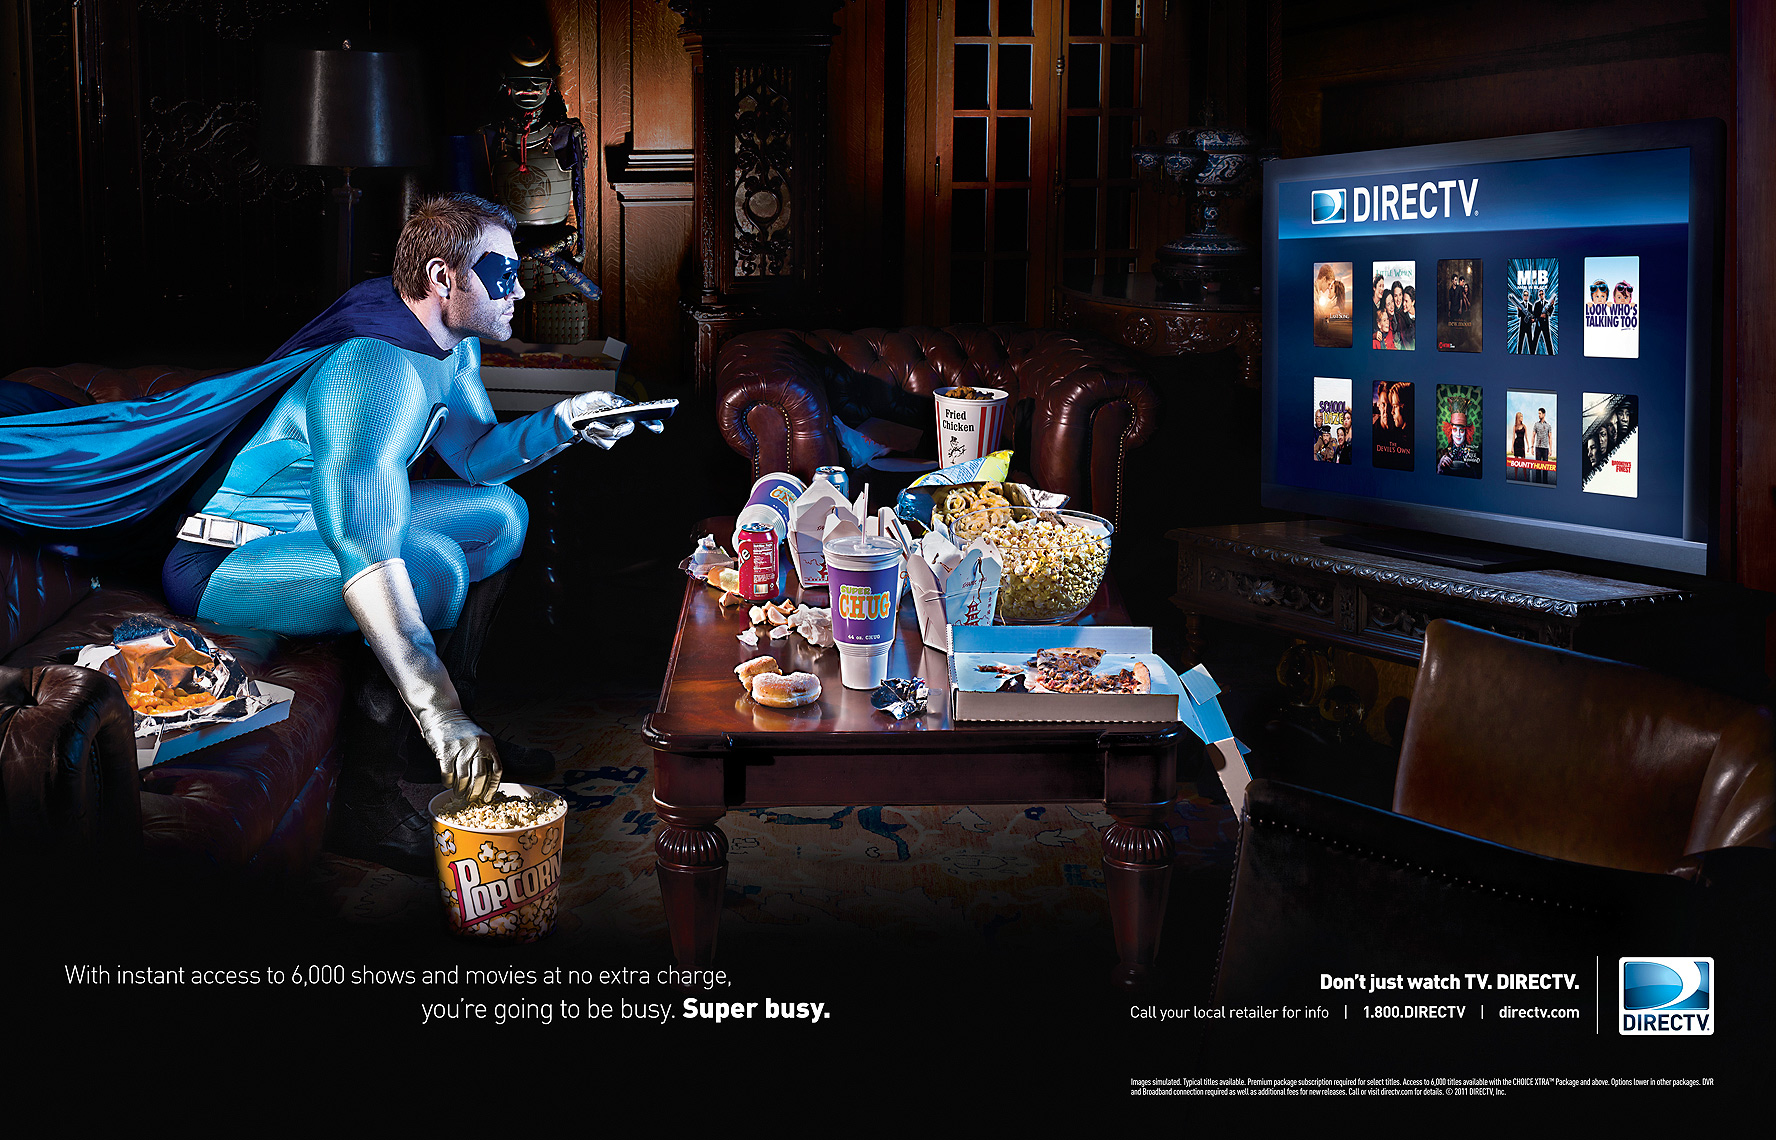 DirecTv-Superhero-Ad-by-Robert-Ascroft-01.jpg